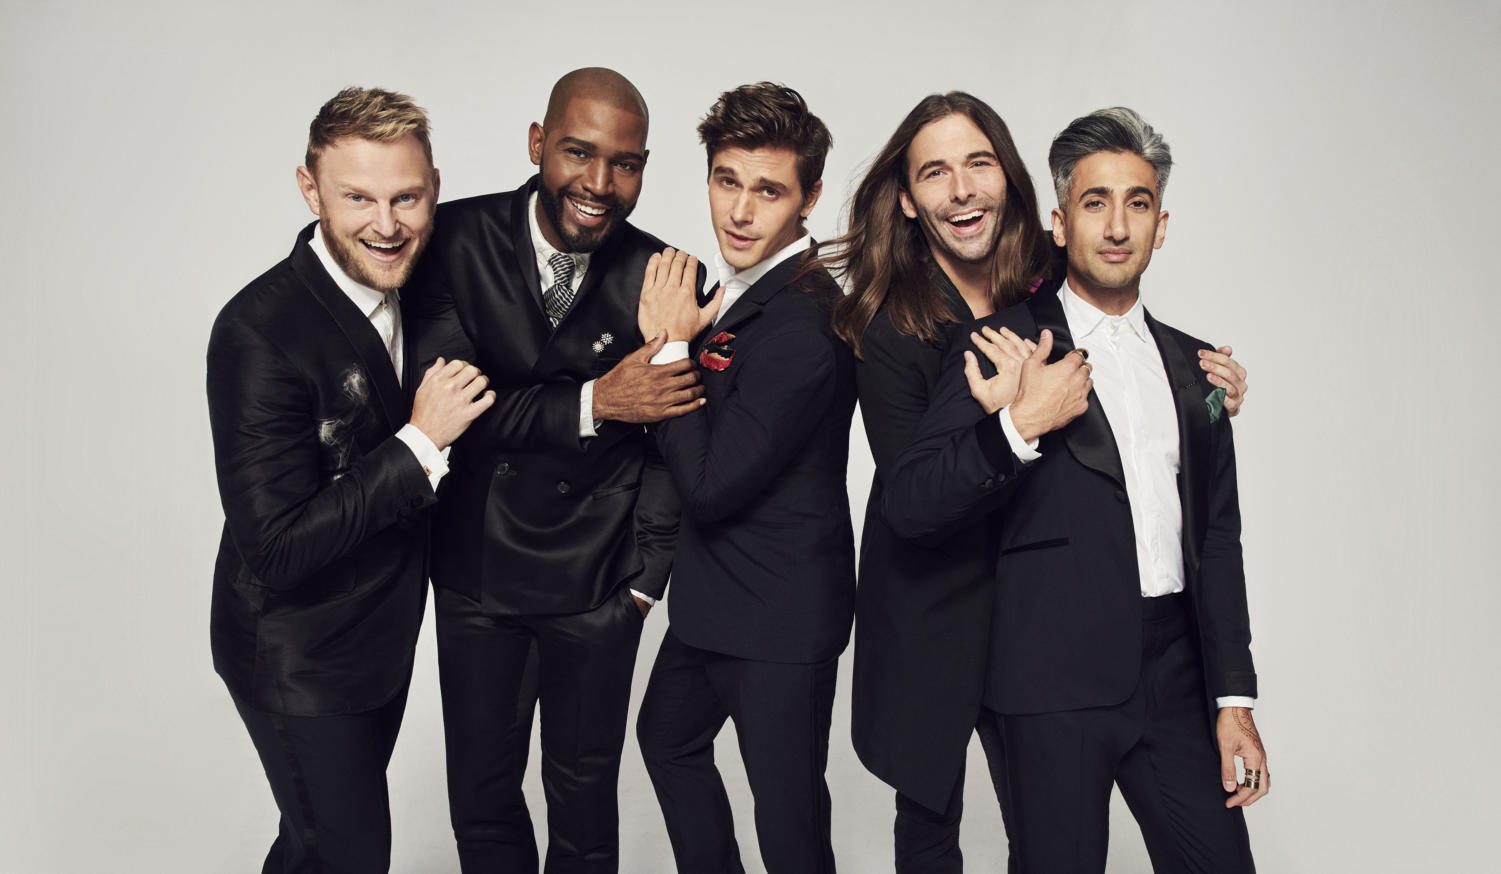 Queer Eye promotional photo